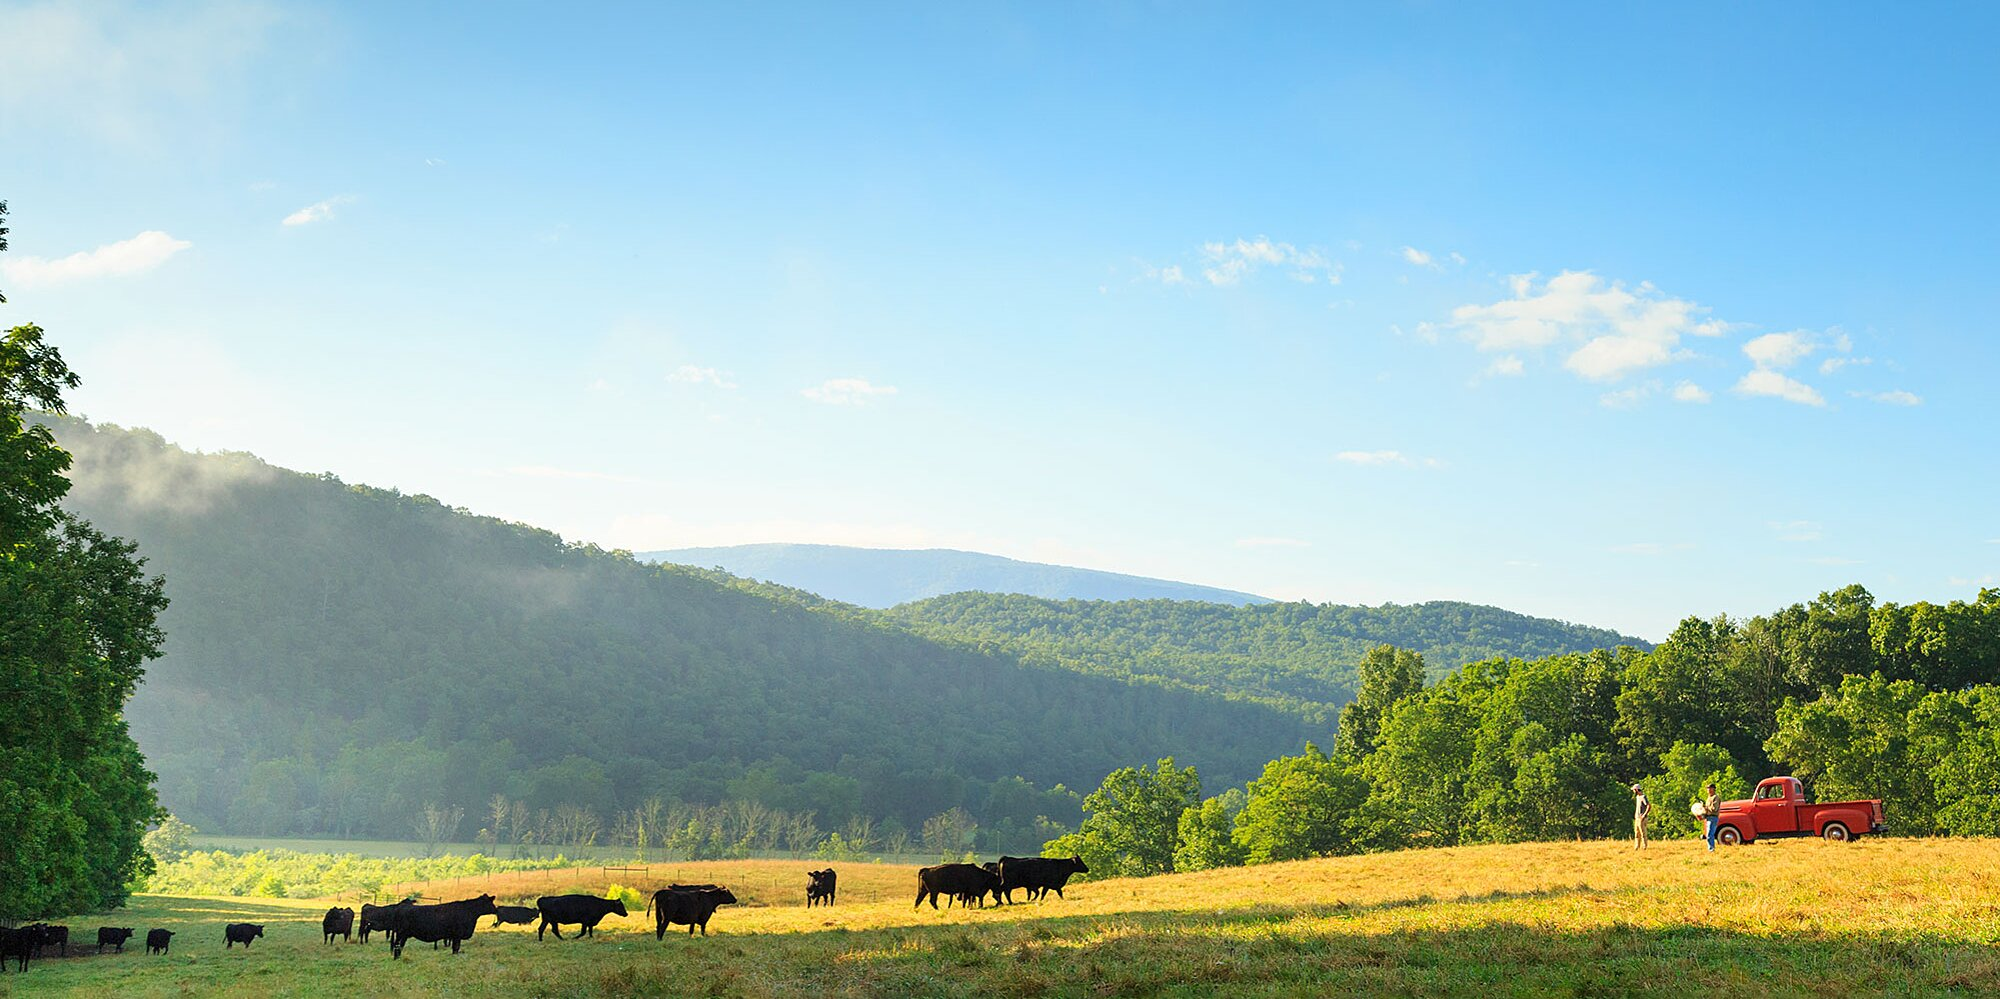 Take an Idyllic Vacation That Supports an Independent Farmer